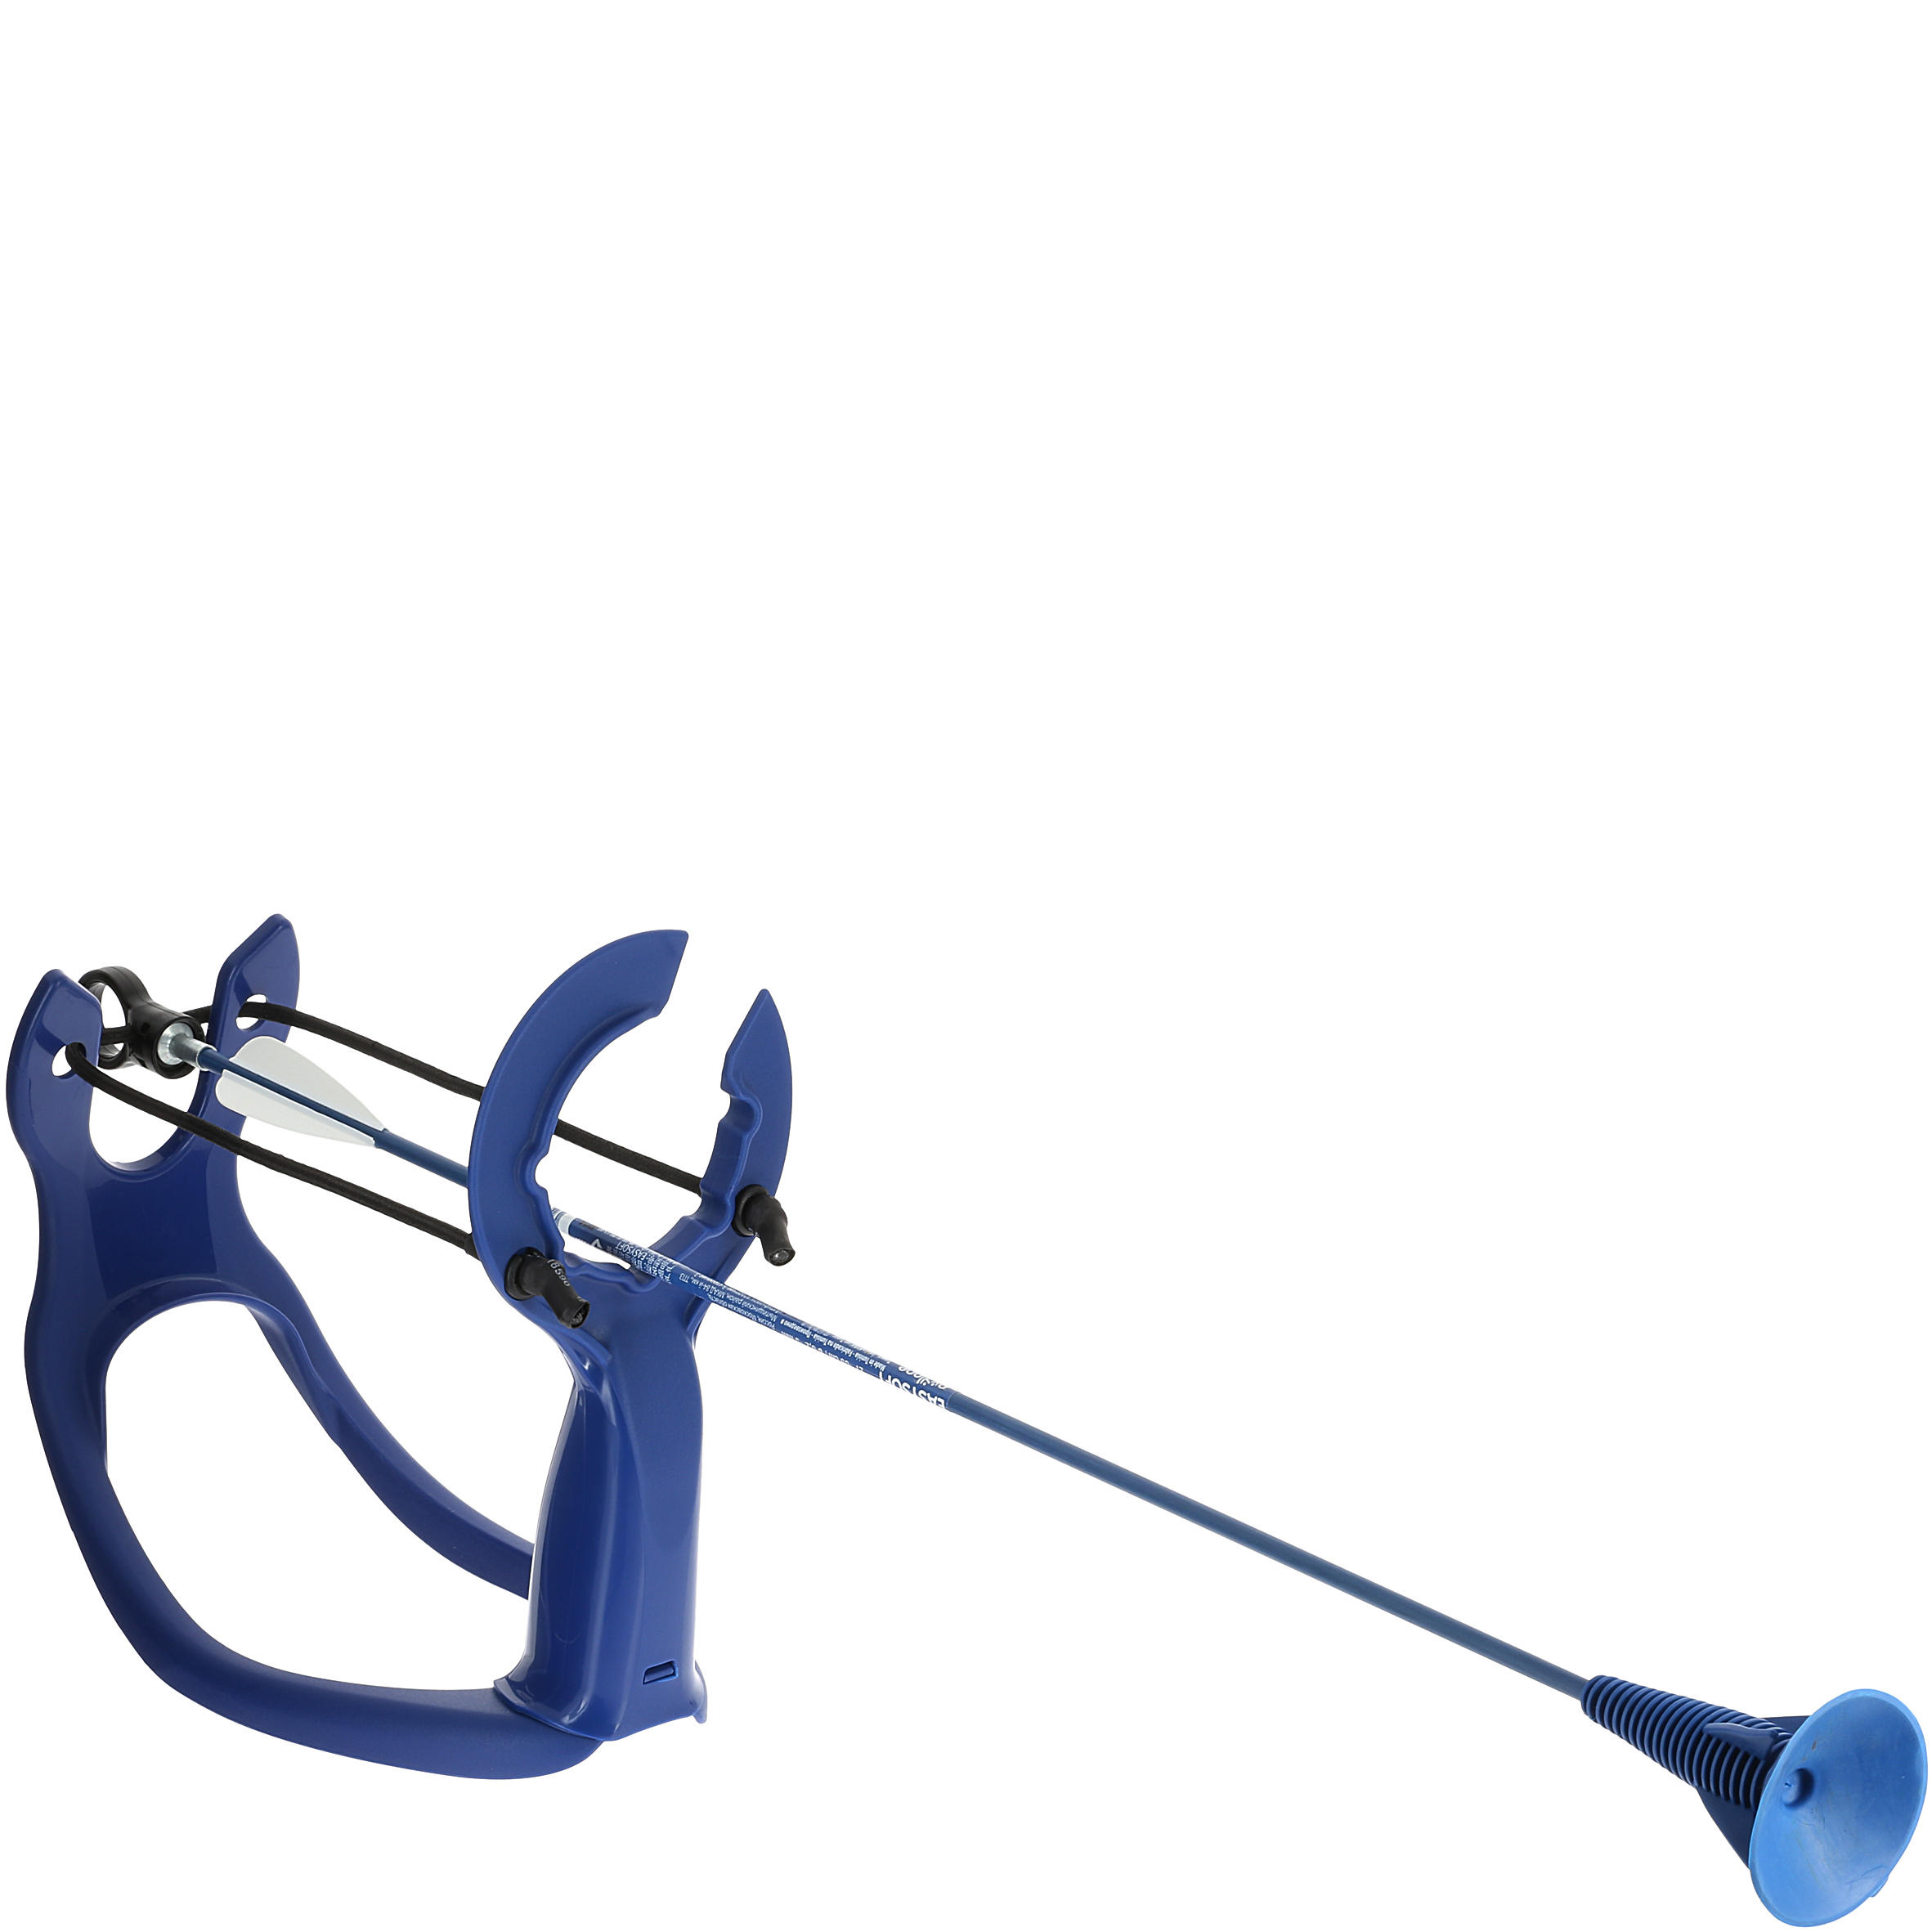 EASYTECH ARCHERY BLUE SET